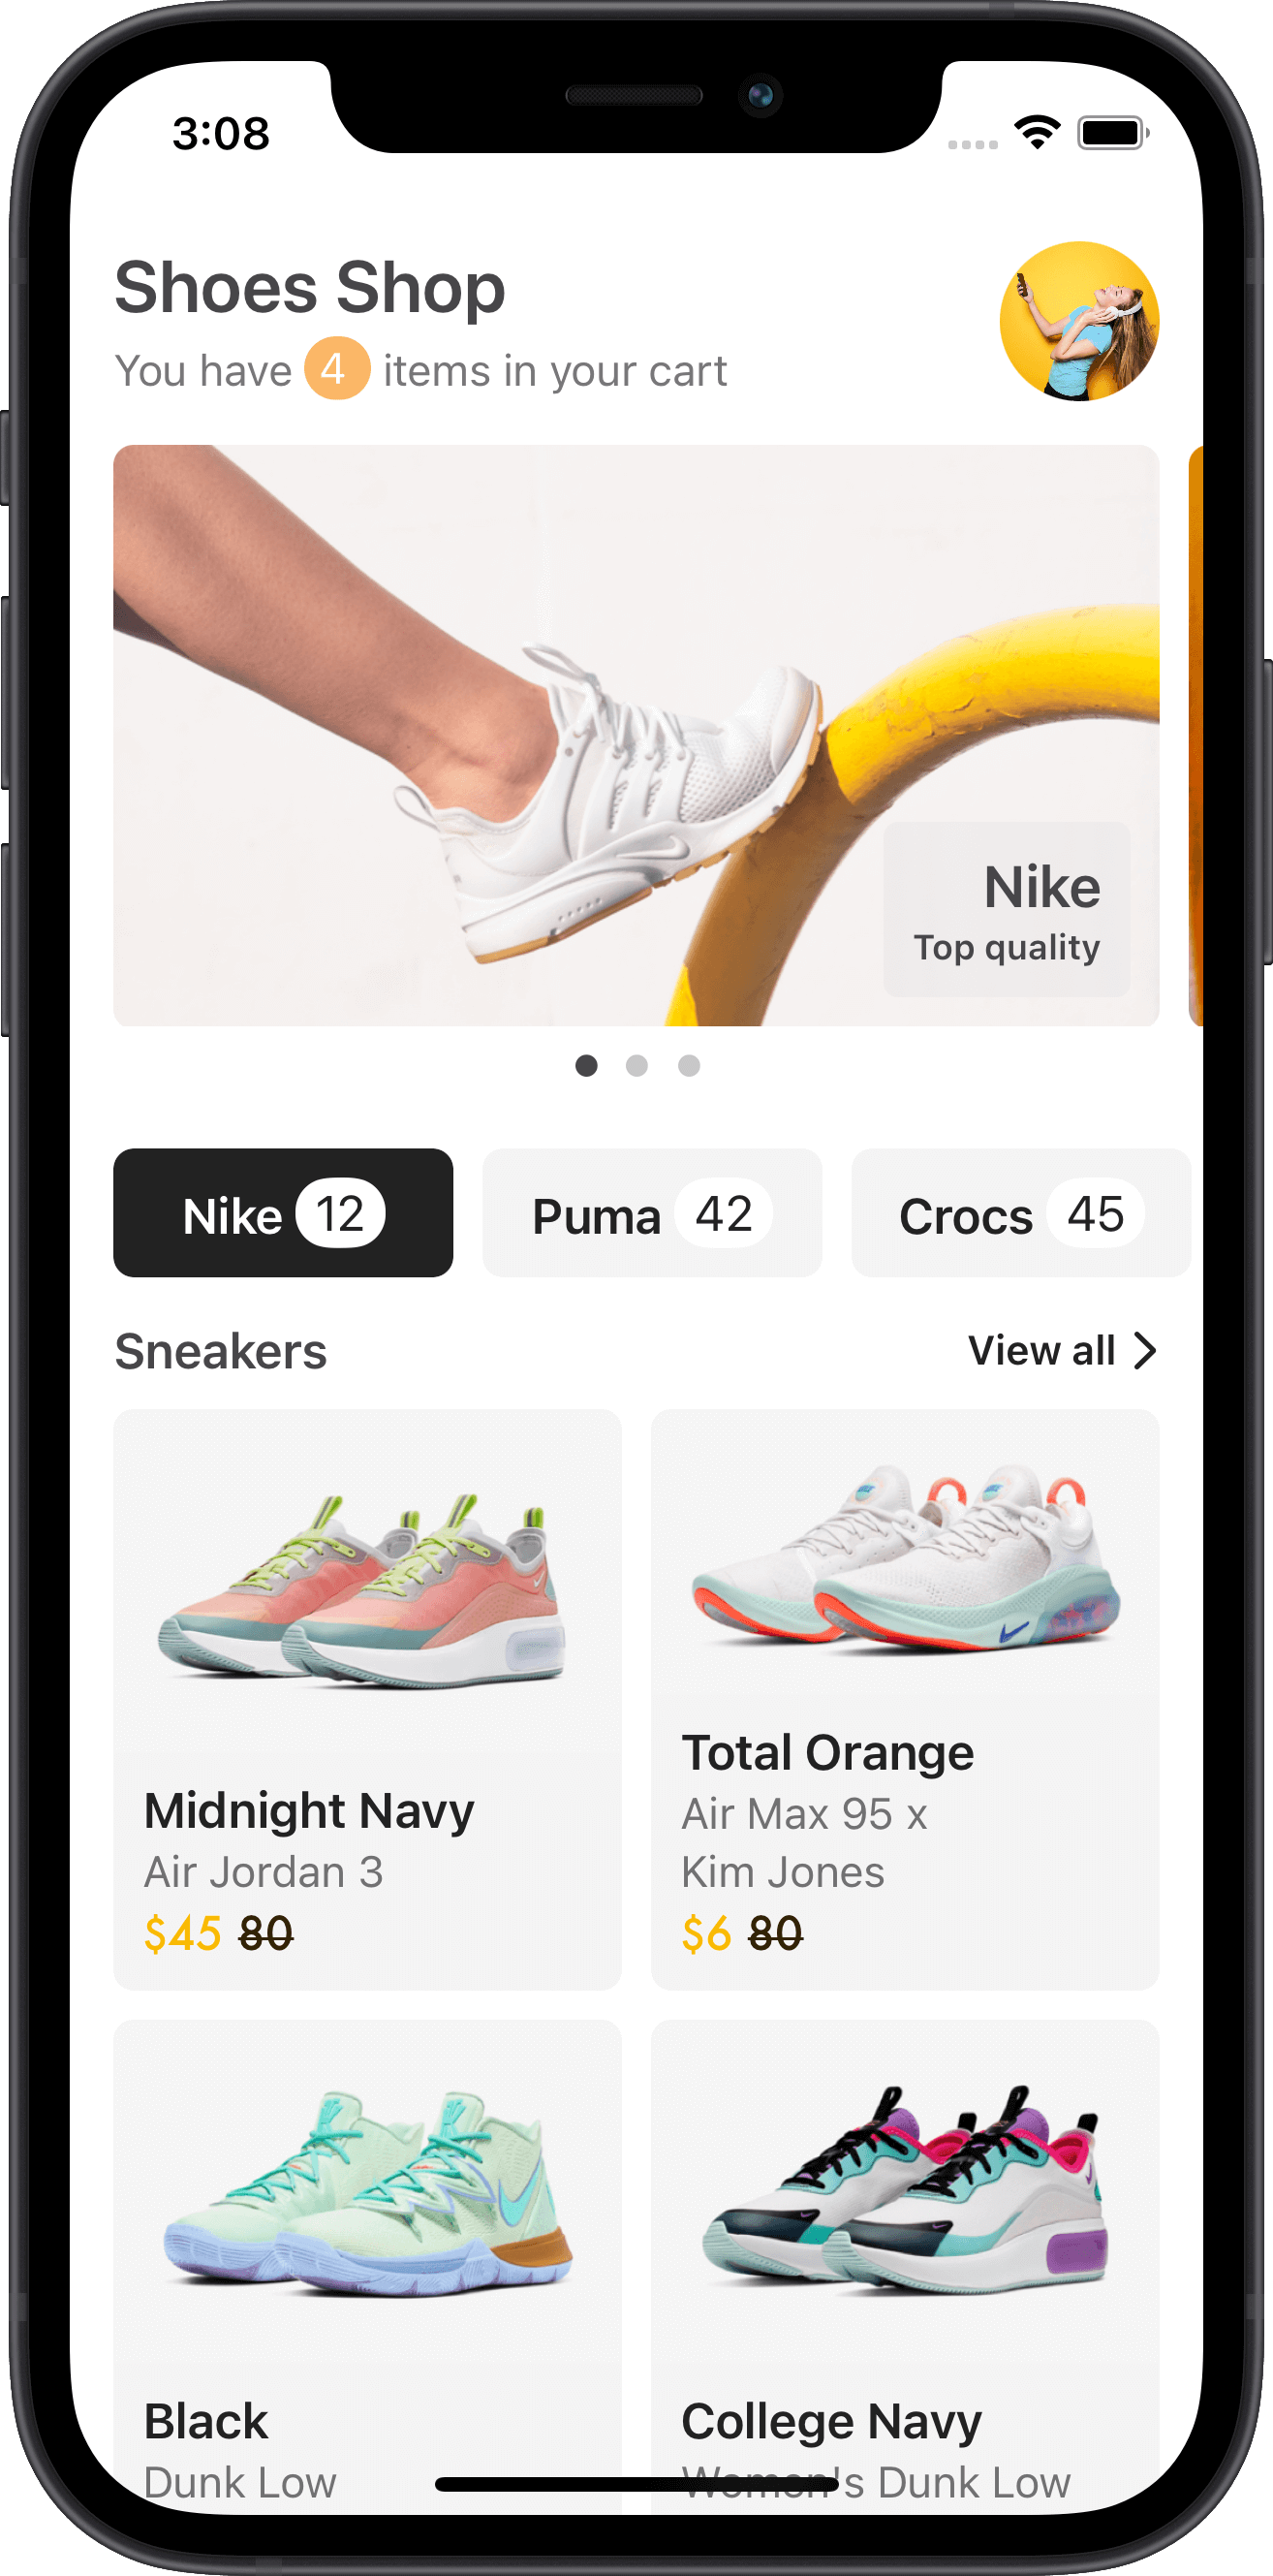 e-commerce, home, sneakers, products, nike